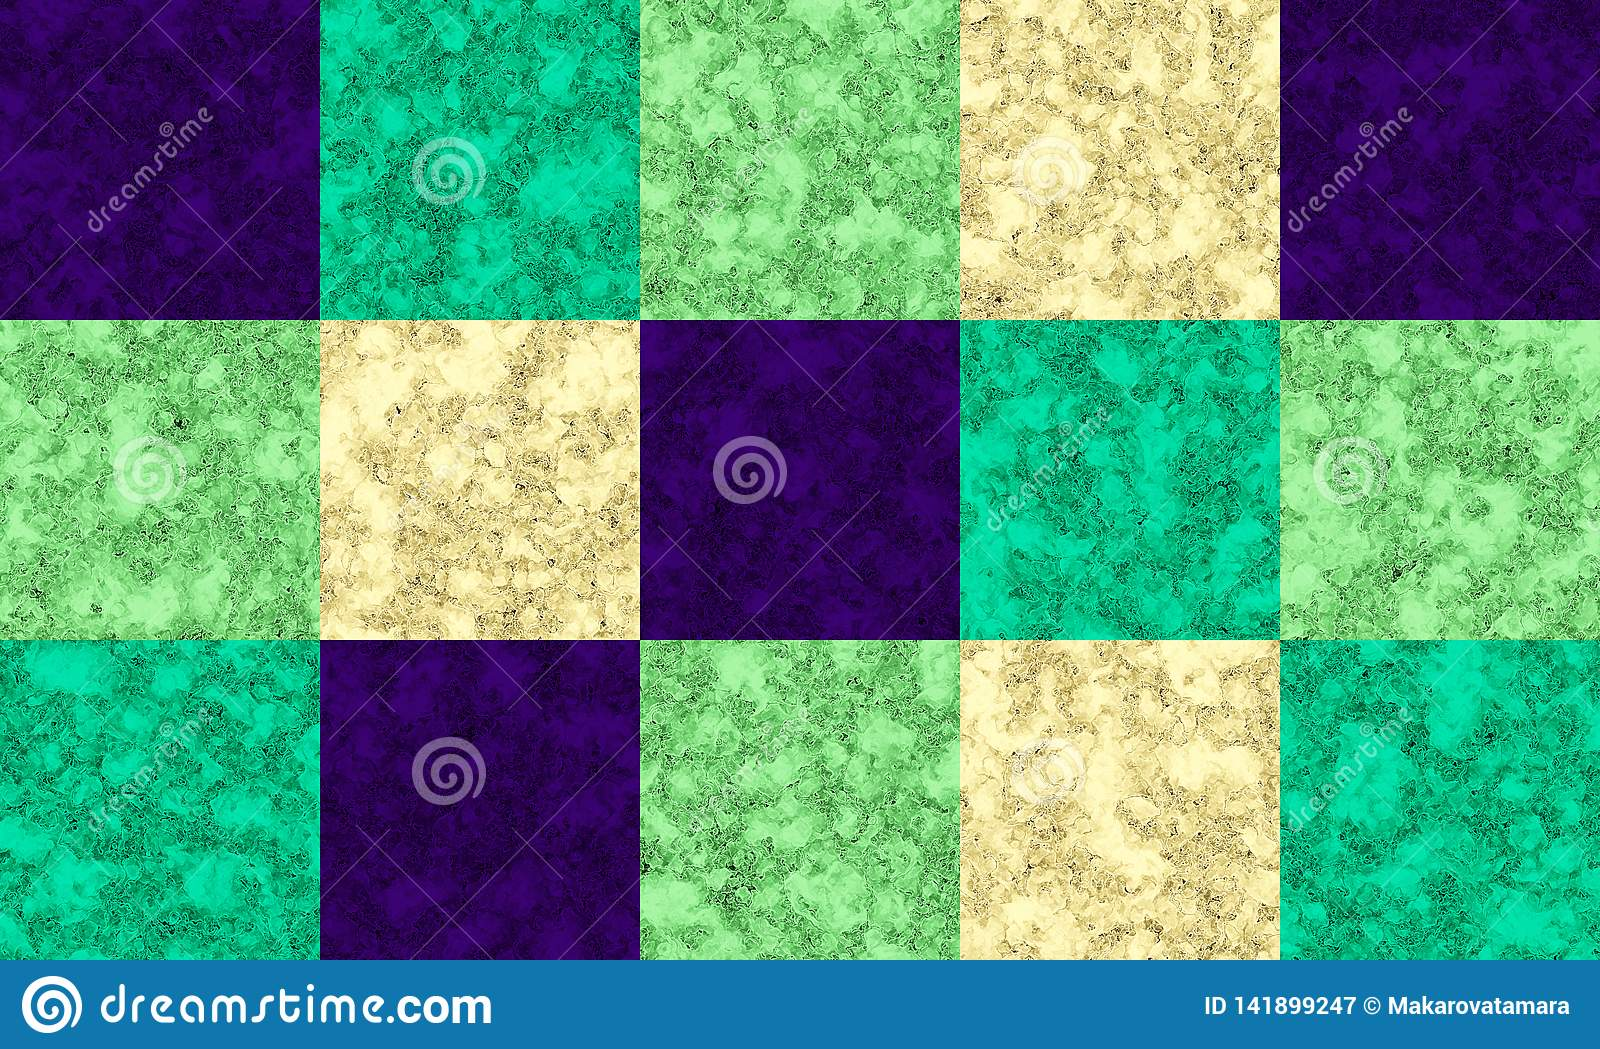 Violet, emerald, green and cream color marble texture, tile pattern